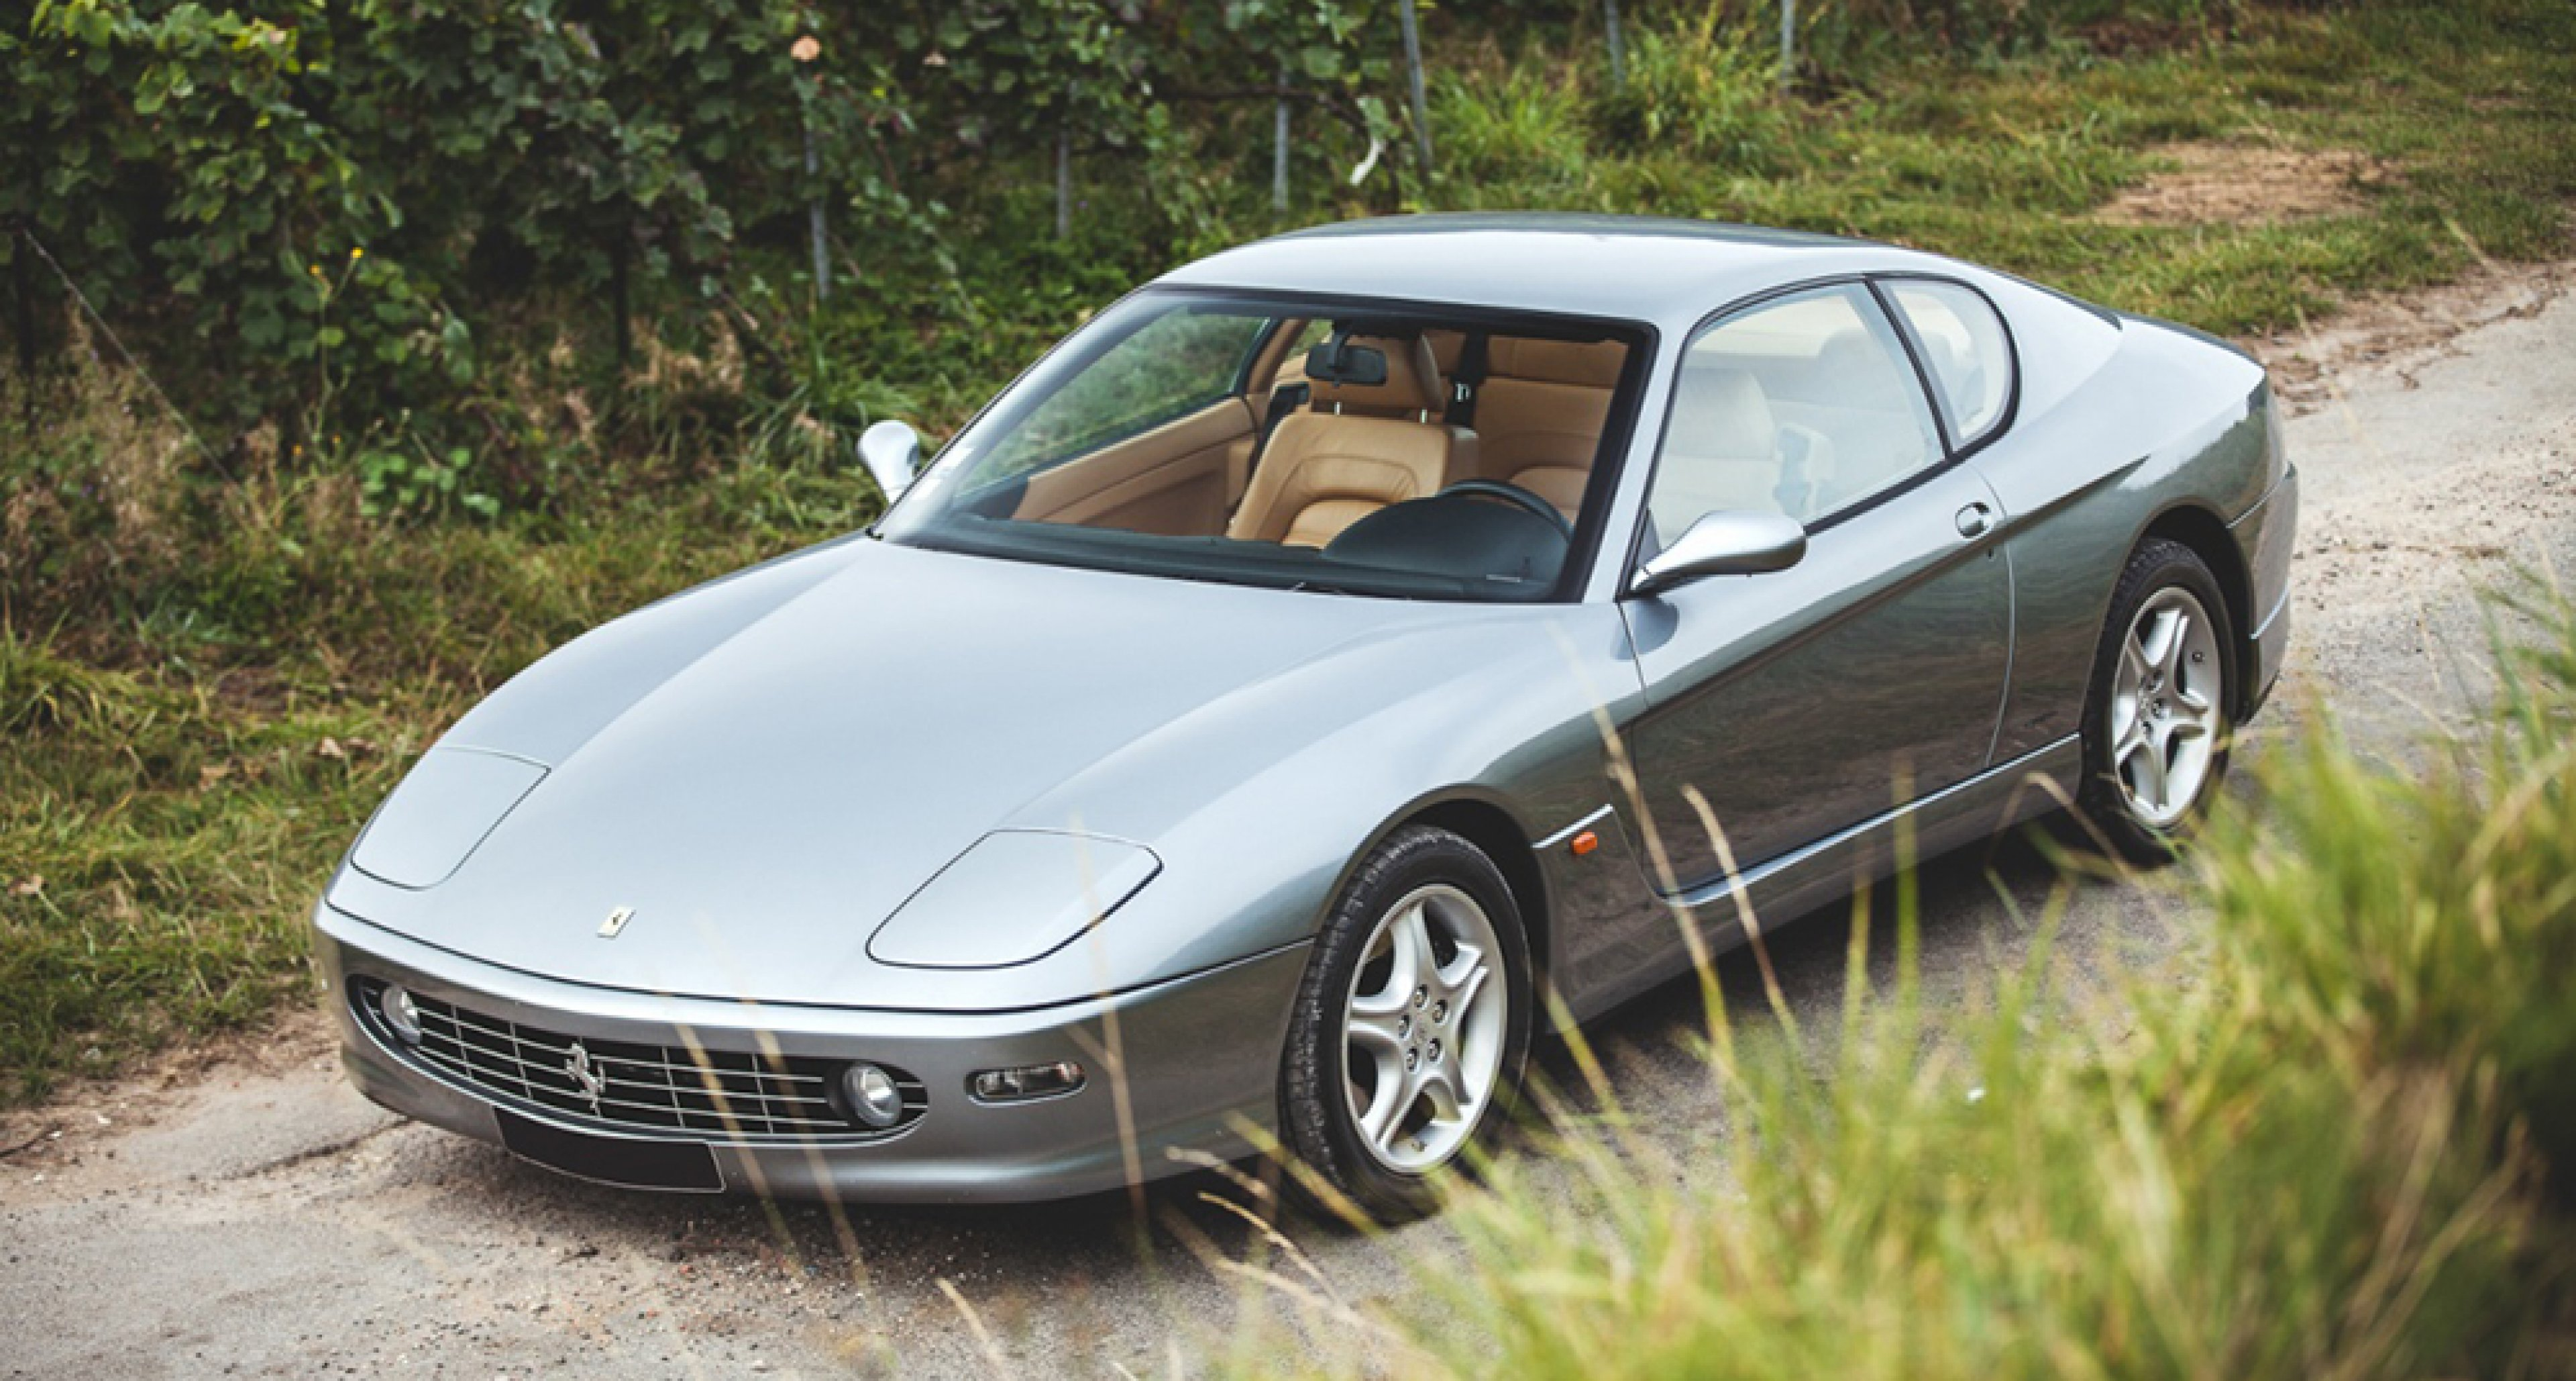 the ferrari 456 is our ultimate driving sports car | classic driver